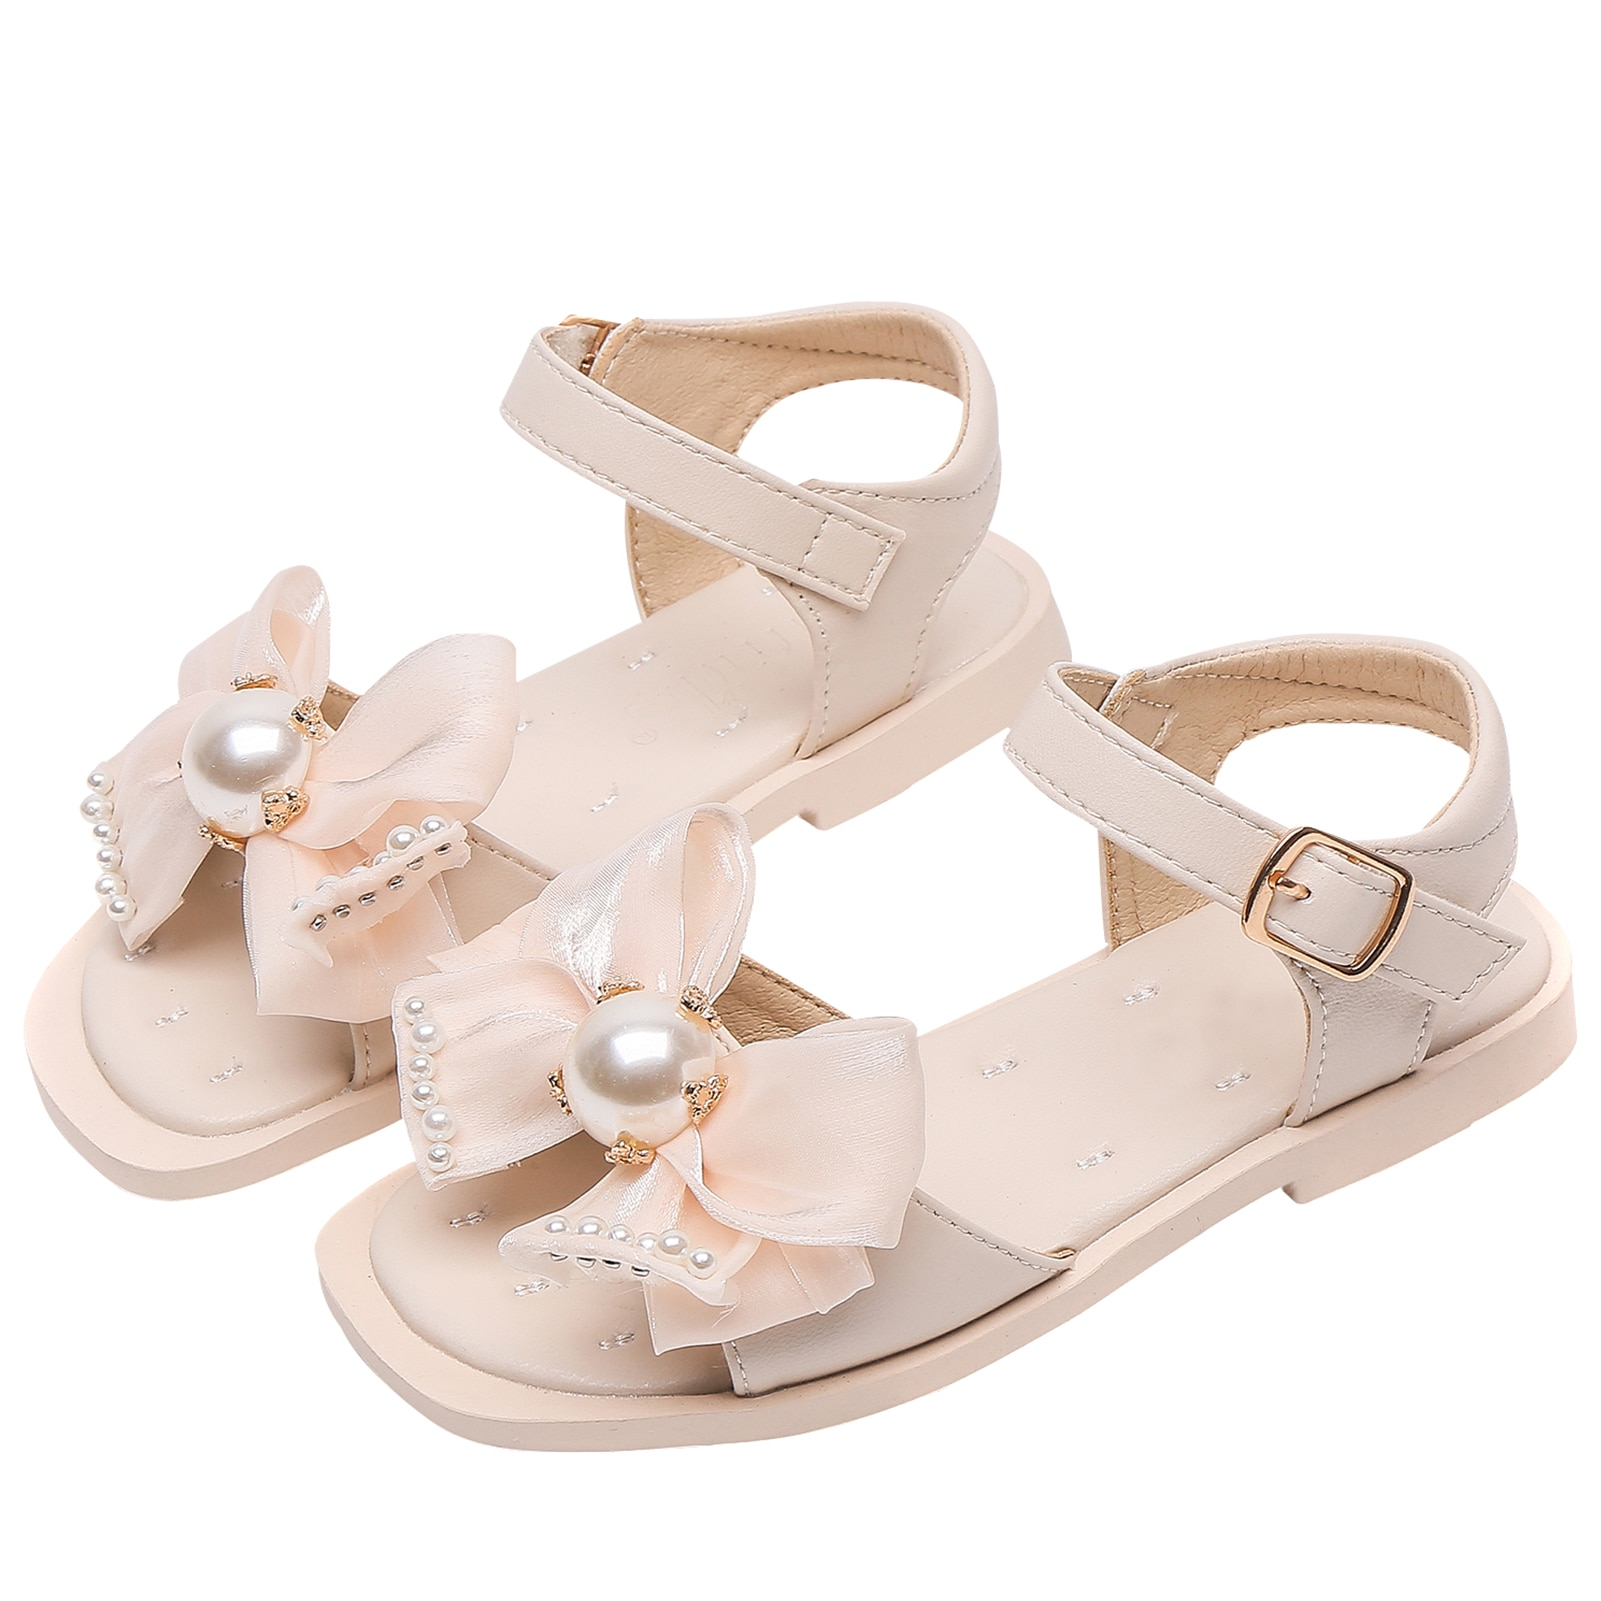 Girl Sandals Bow-knot Kids Shoes Microfiber Leather Open-toed Princess Sandals Fashion Breathable Child Baby Girls Summer Daily